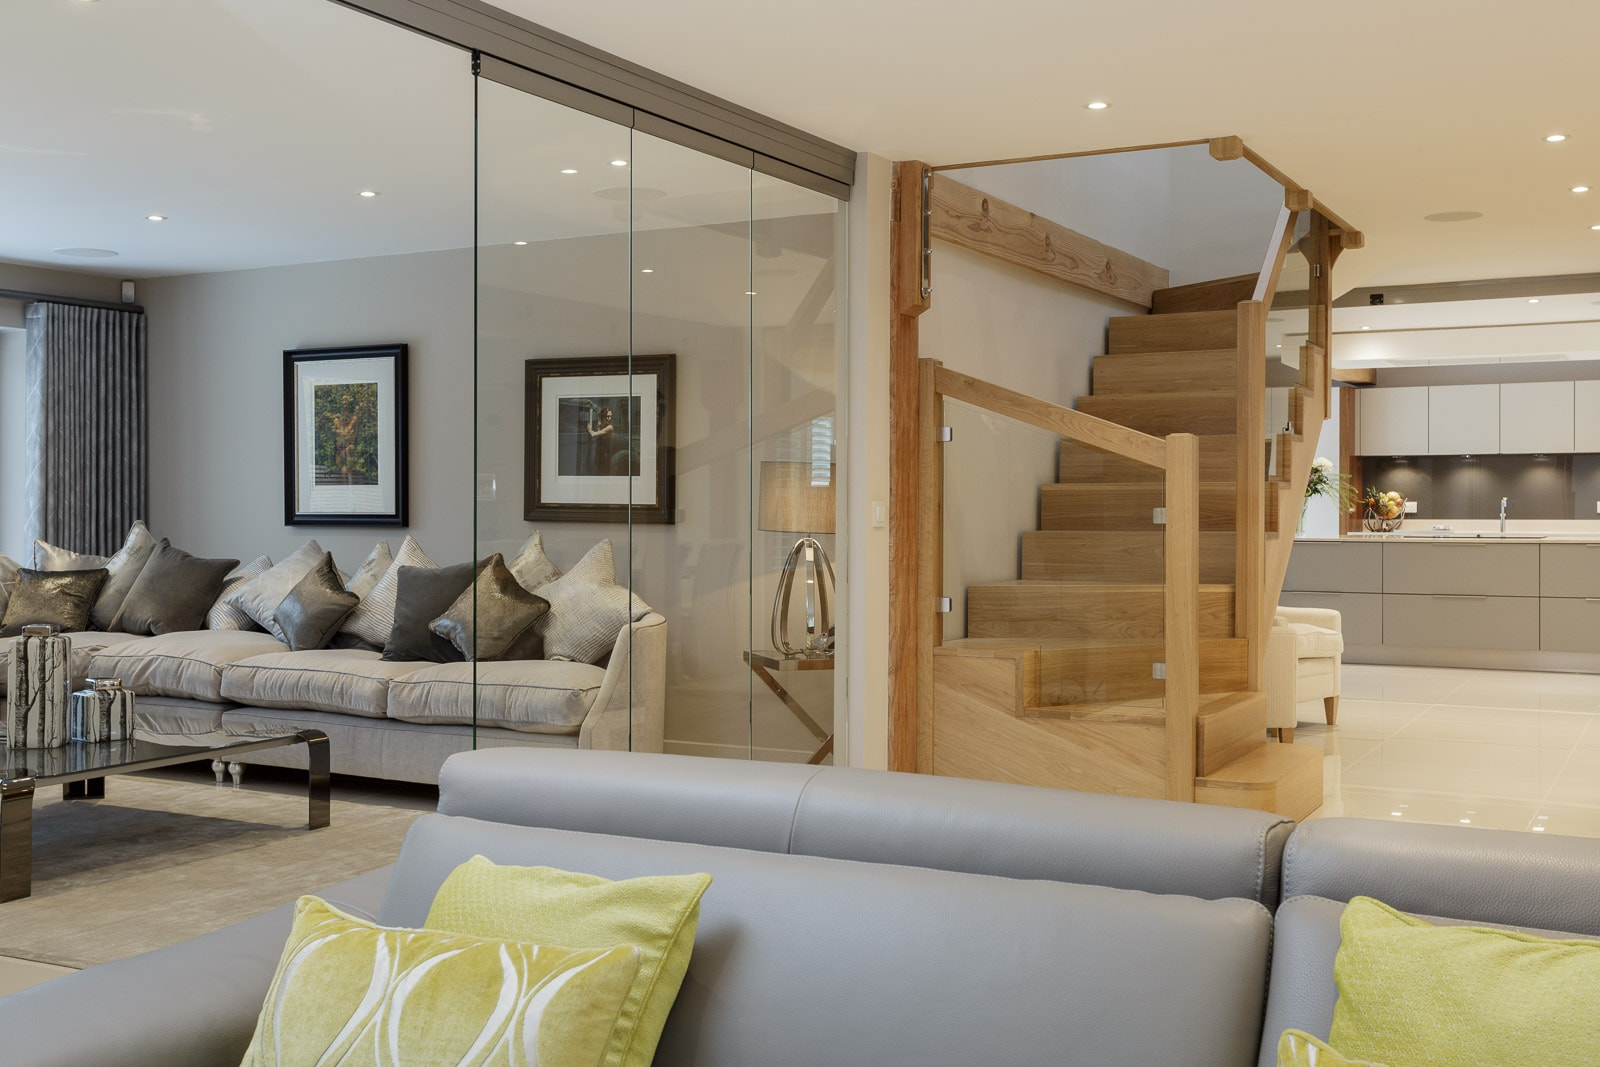 scene inside a modern luxury self build house with view of kitchen, lounge and wooden stairwell